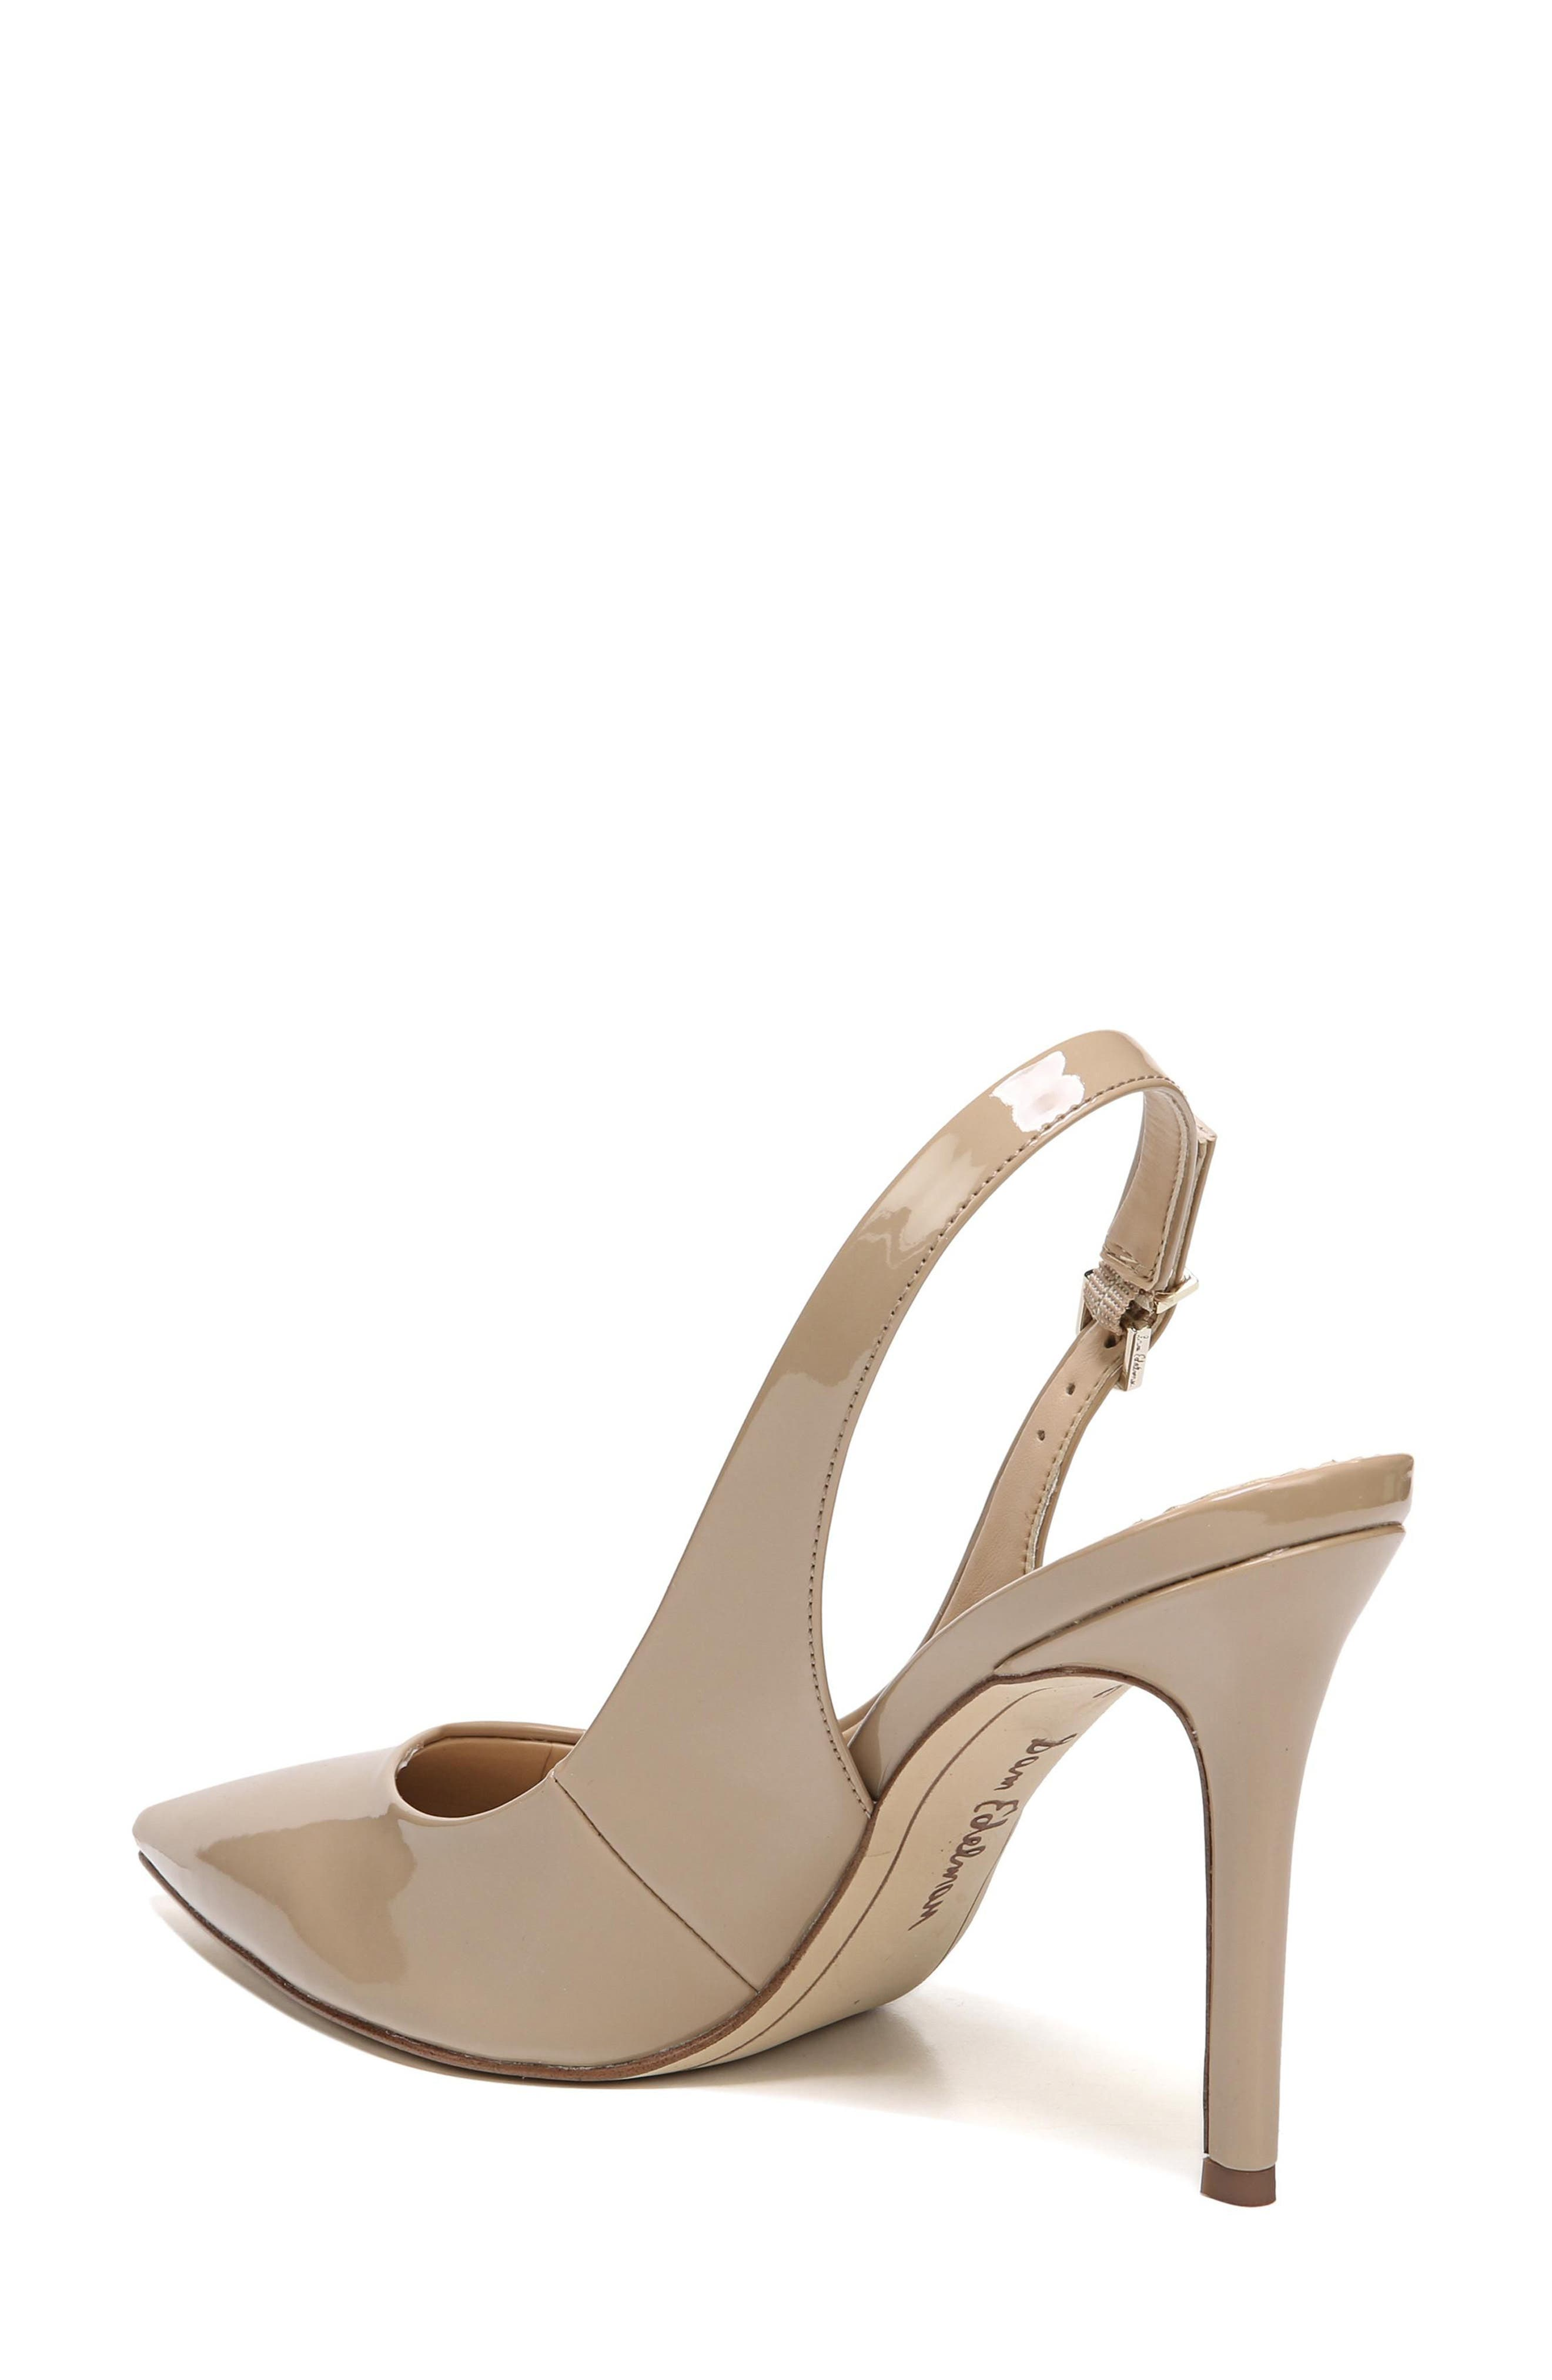 Hastings Slingback Pump,                             Alternate thumbnail 2, color,                             Classic Nude Patent Leather